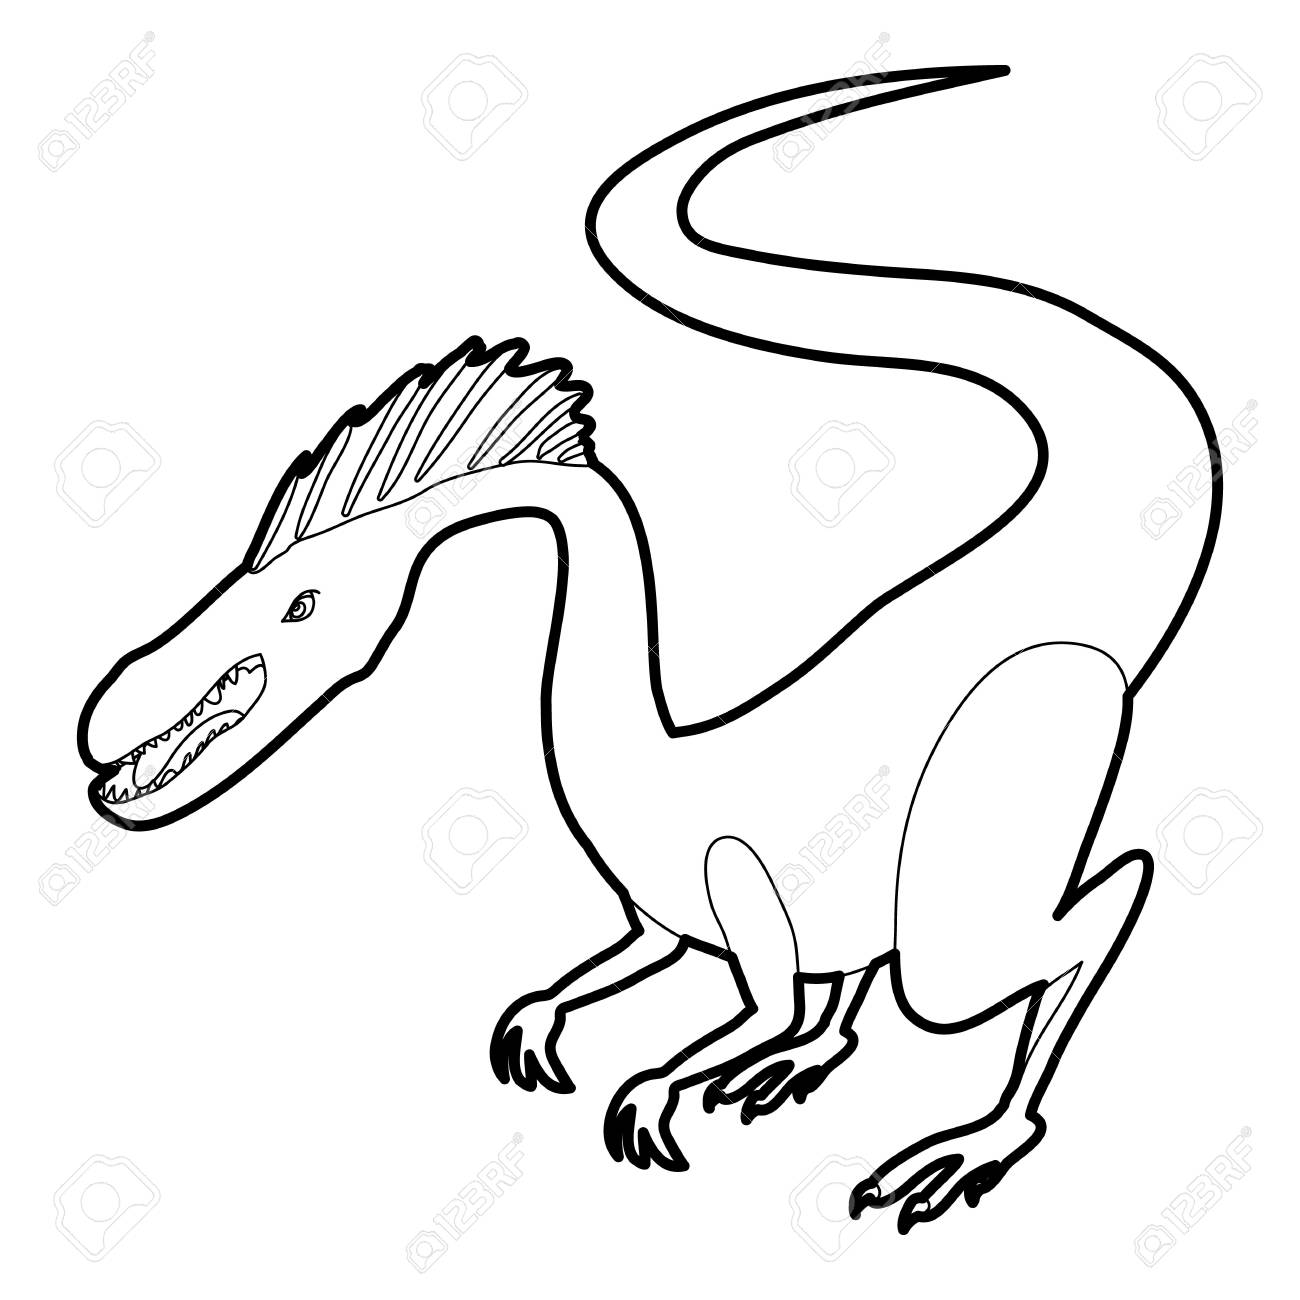 hungry dinosaur icon outline stock vector 82425064